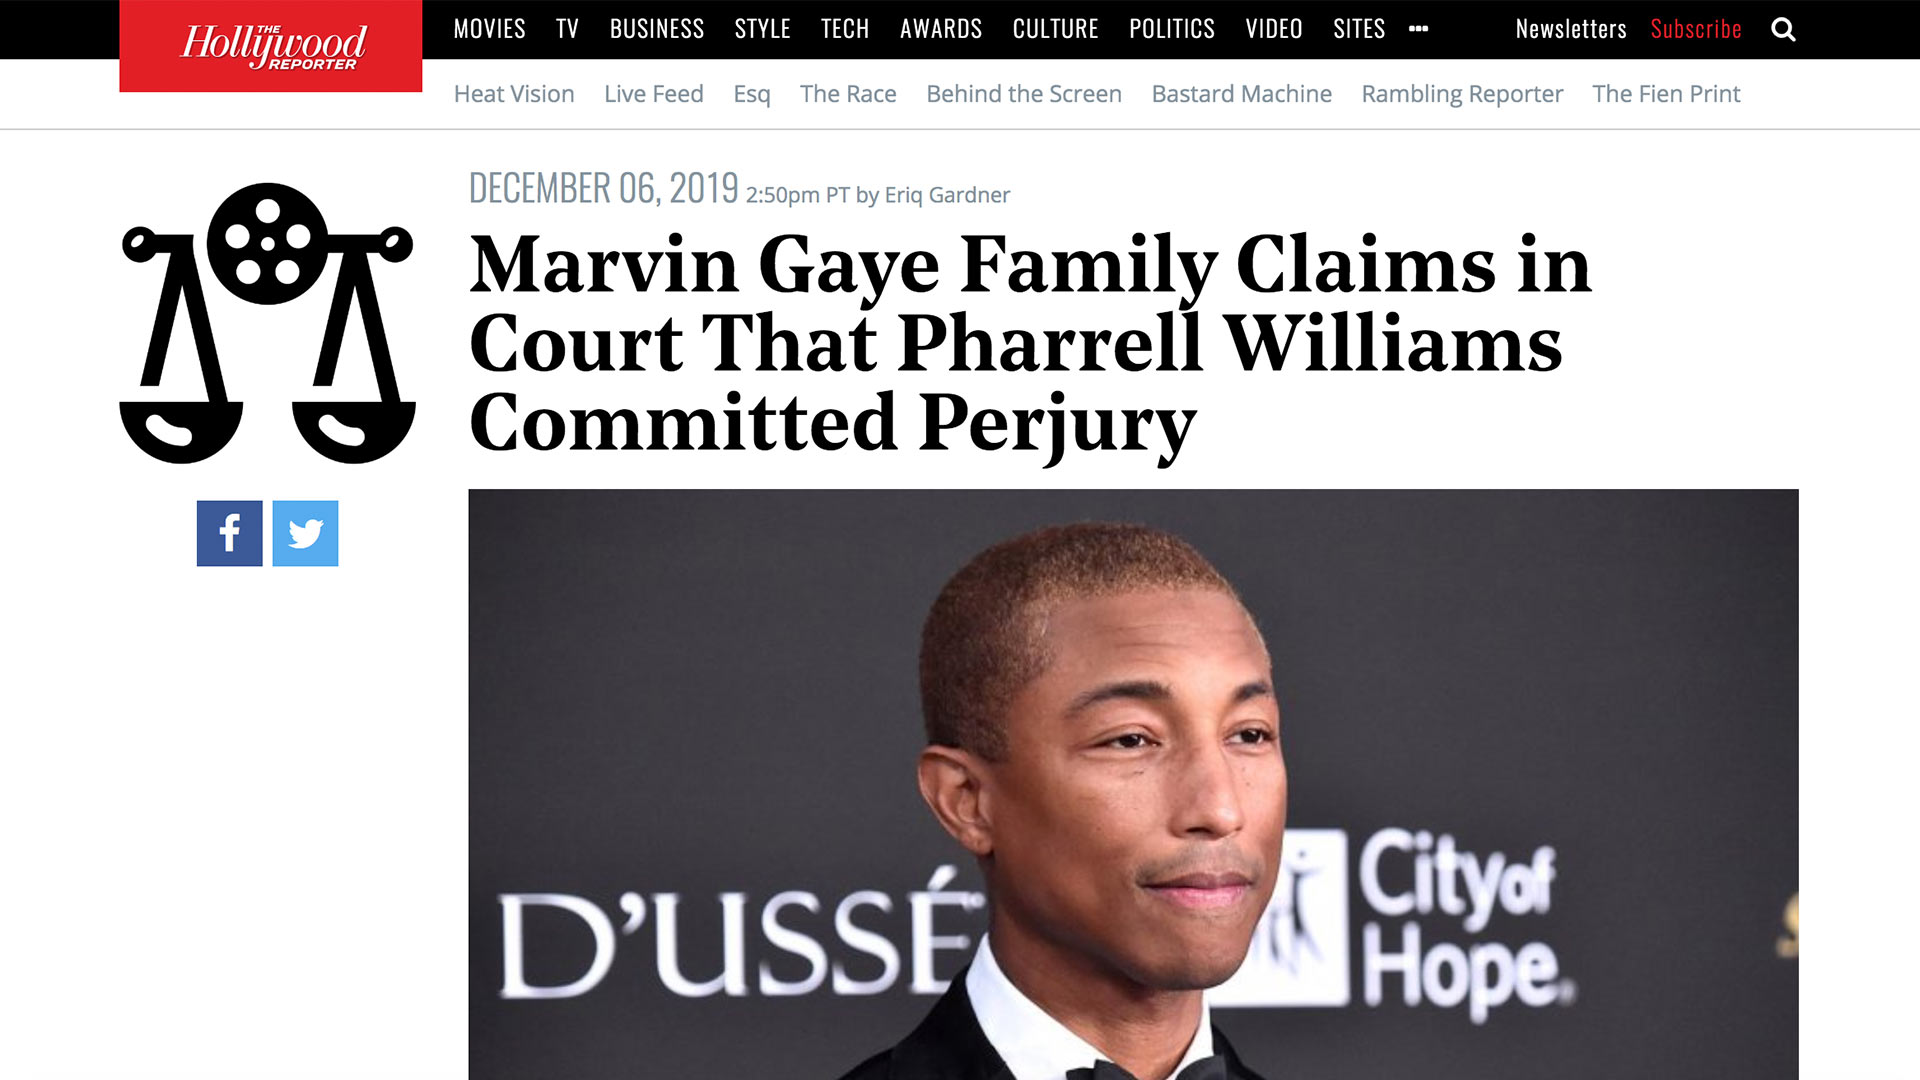 Fairness Rocks News Marvin Gaye Family Claims in Court That Pharrell Williams Committed Perjury